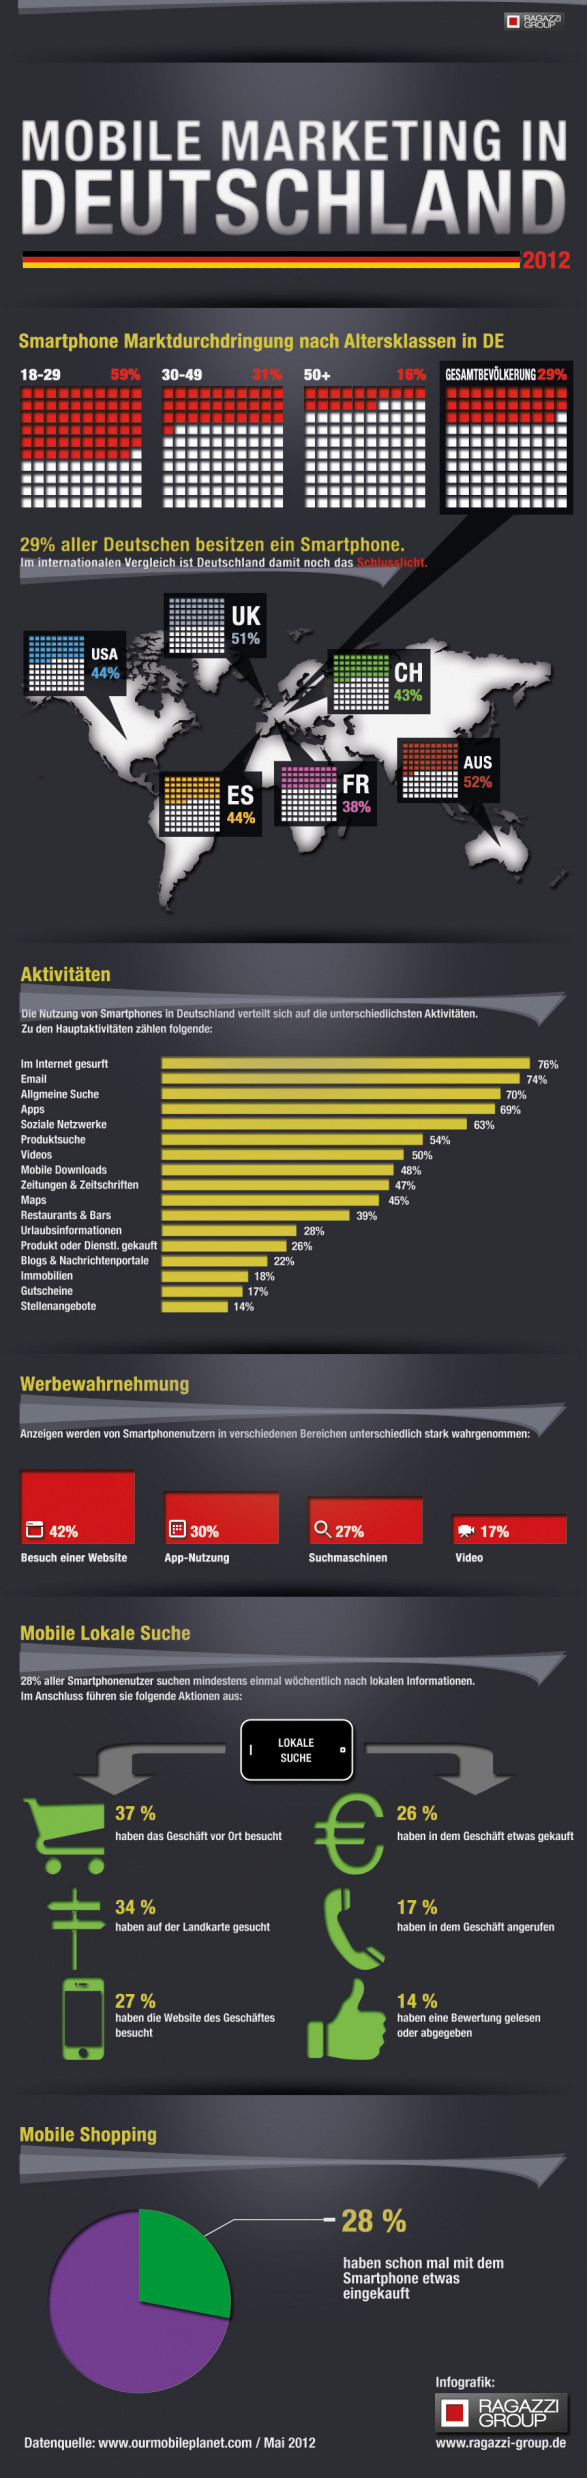 Mobile Marketing in Germany